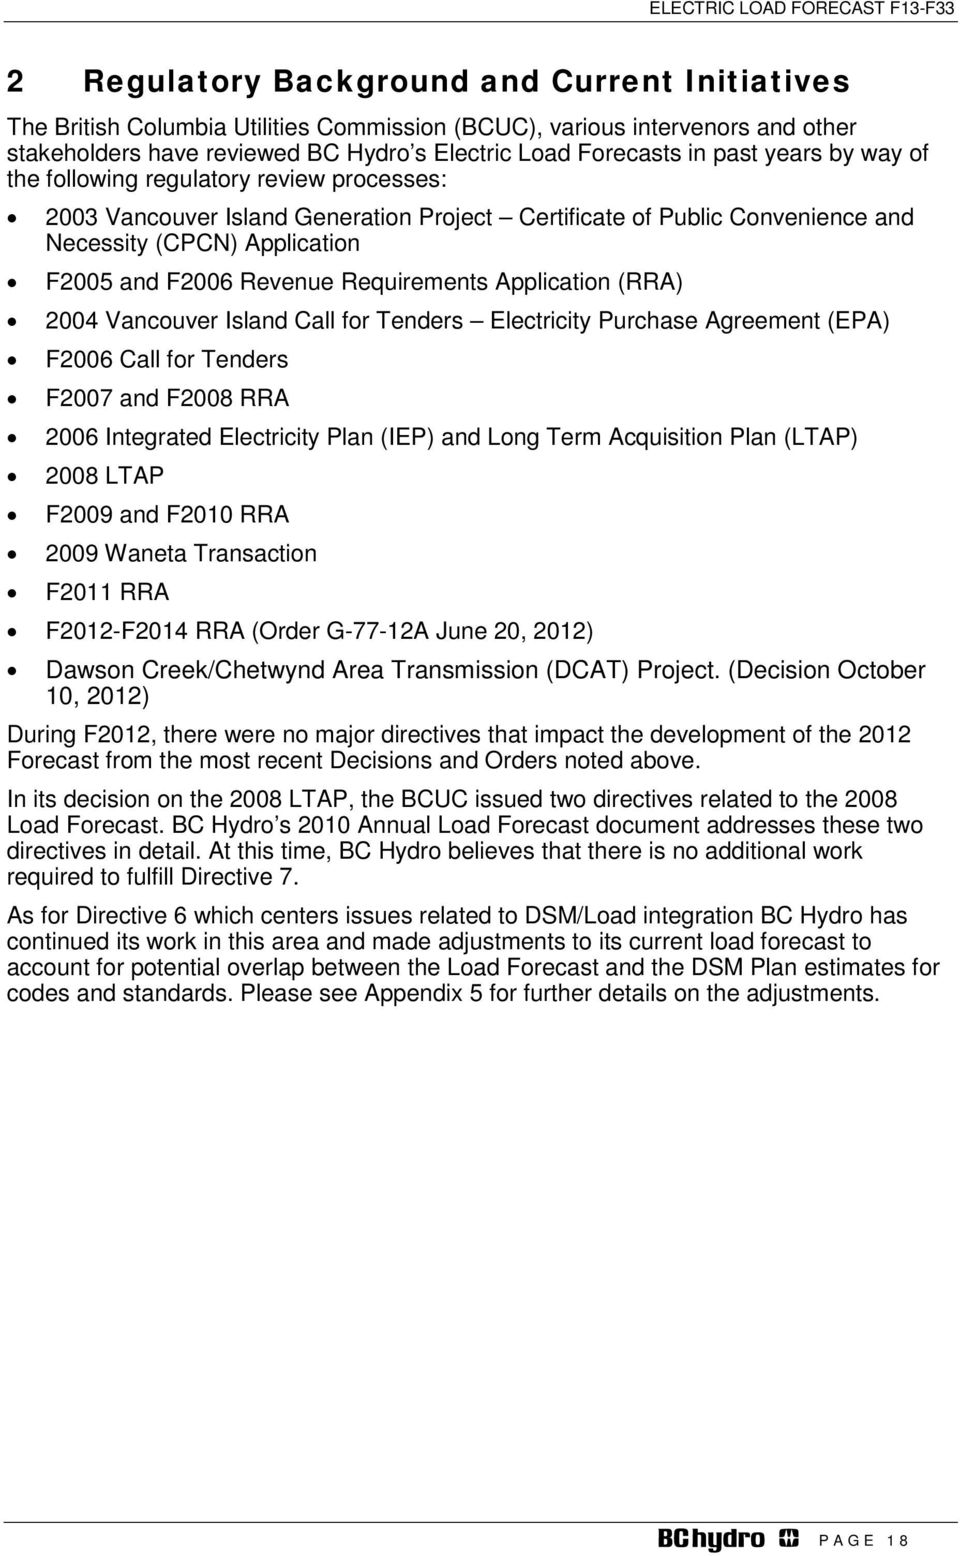 Requirements Application (RRA) 2004 Vancouver Island Call for Tenders Electricity Purchase Agreement (EPA) F2006 Call for Tenders F2007 and F2008 RRA 2006 Integrated Electricity Plan (IEP) and Long